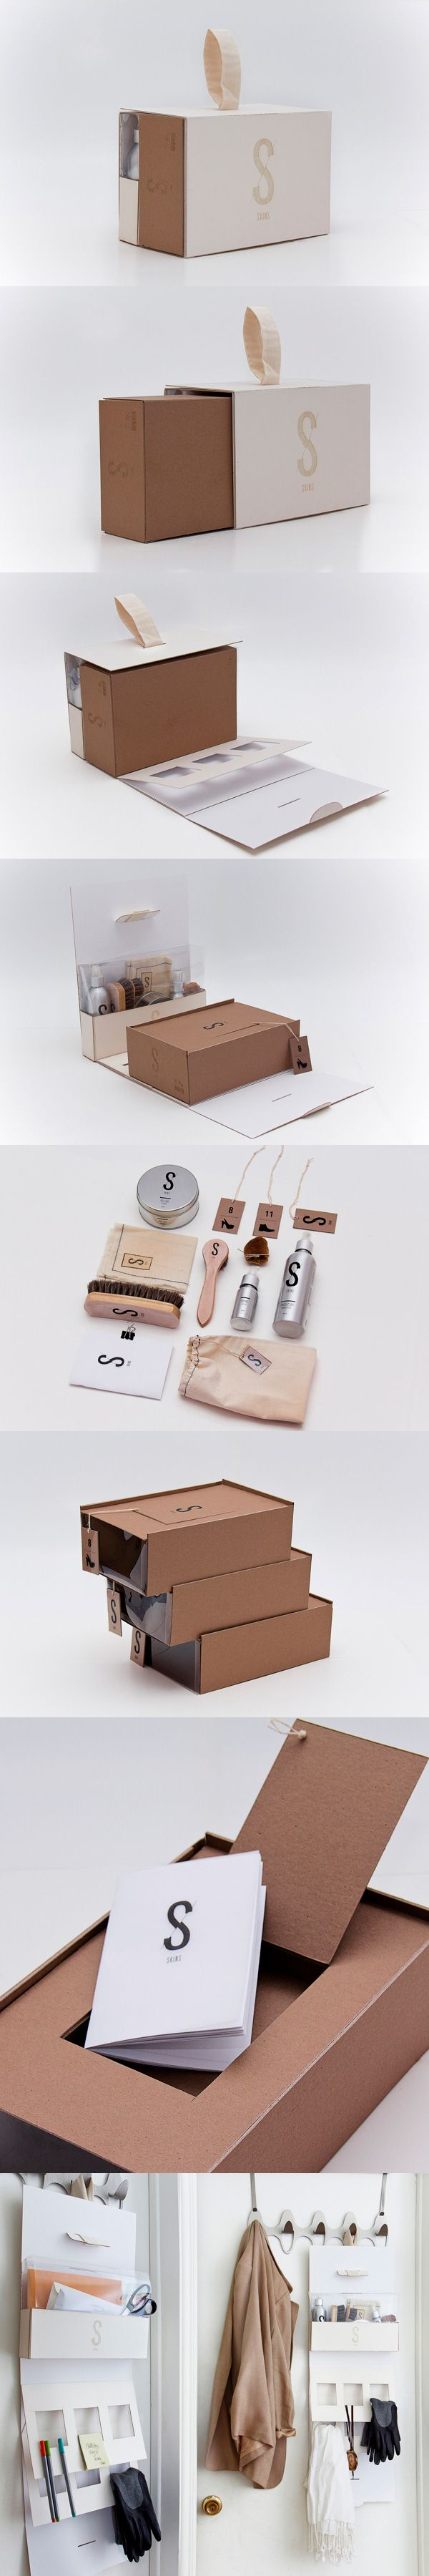 Best 25 Shoe Box Design Ideas On Pinterest Package